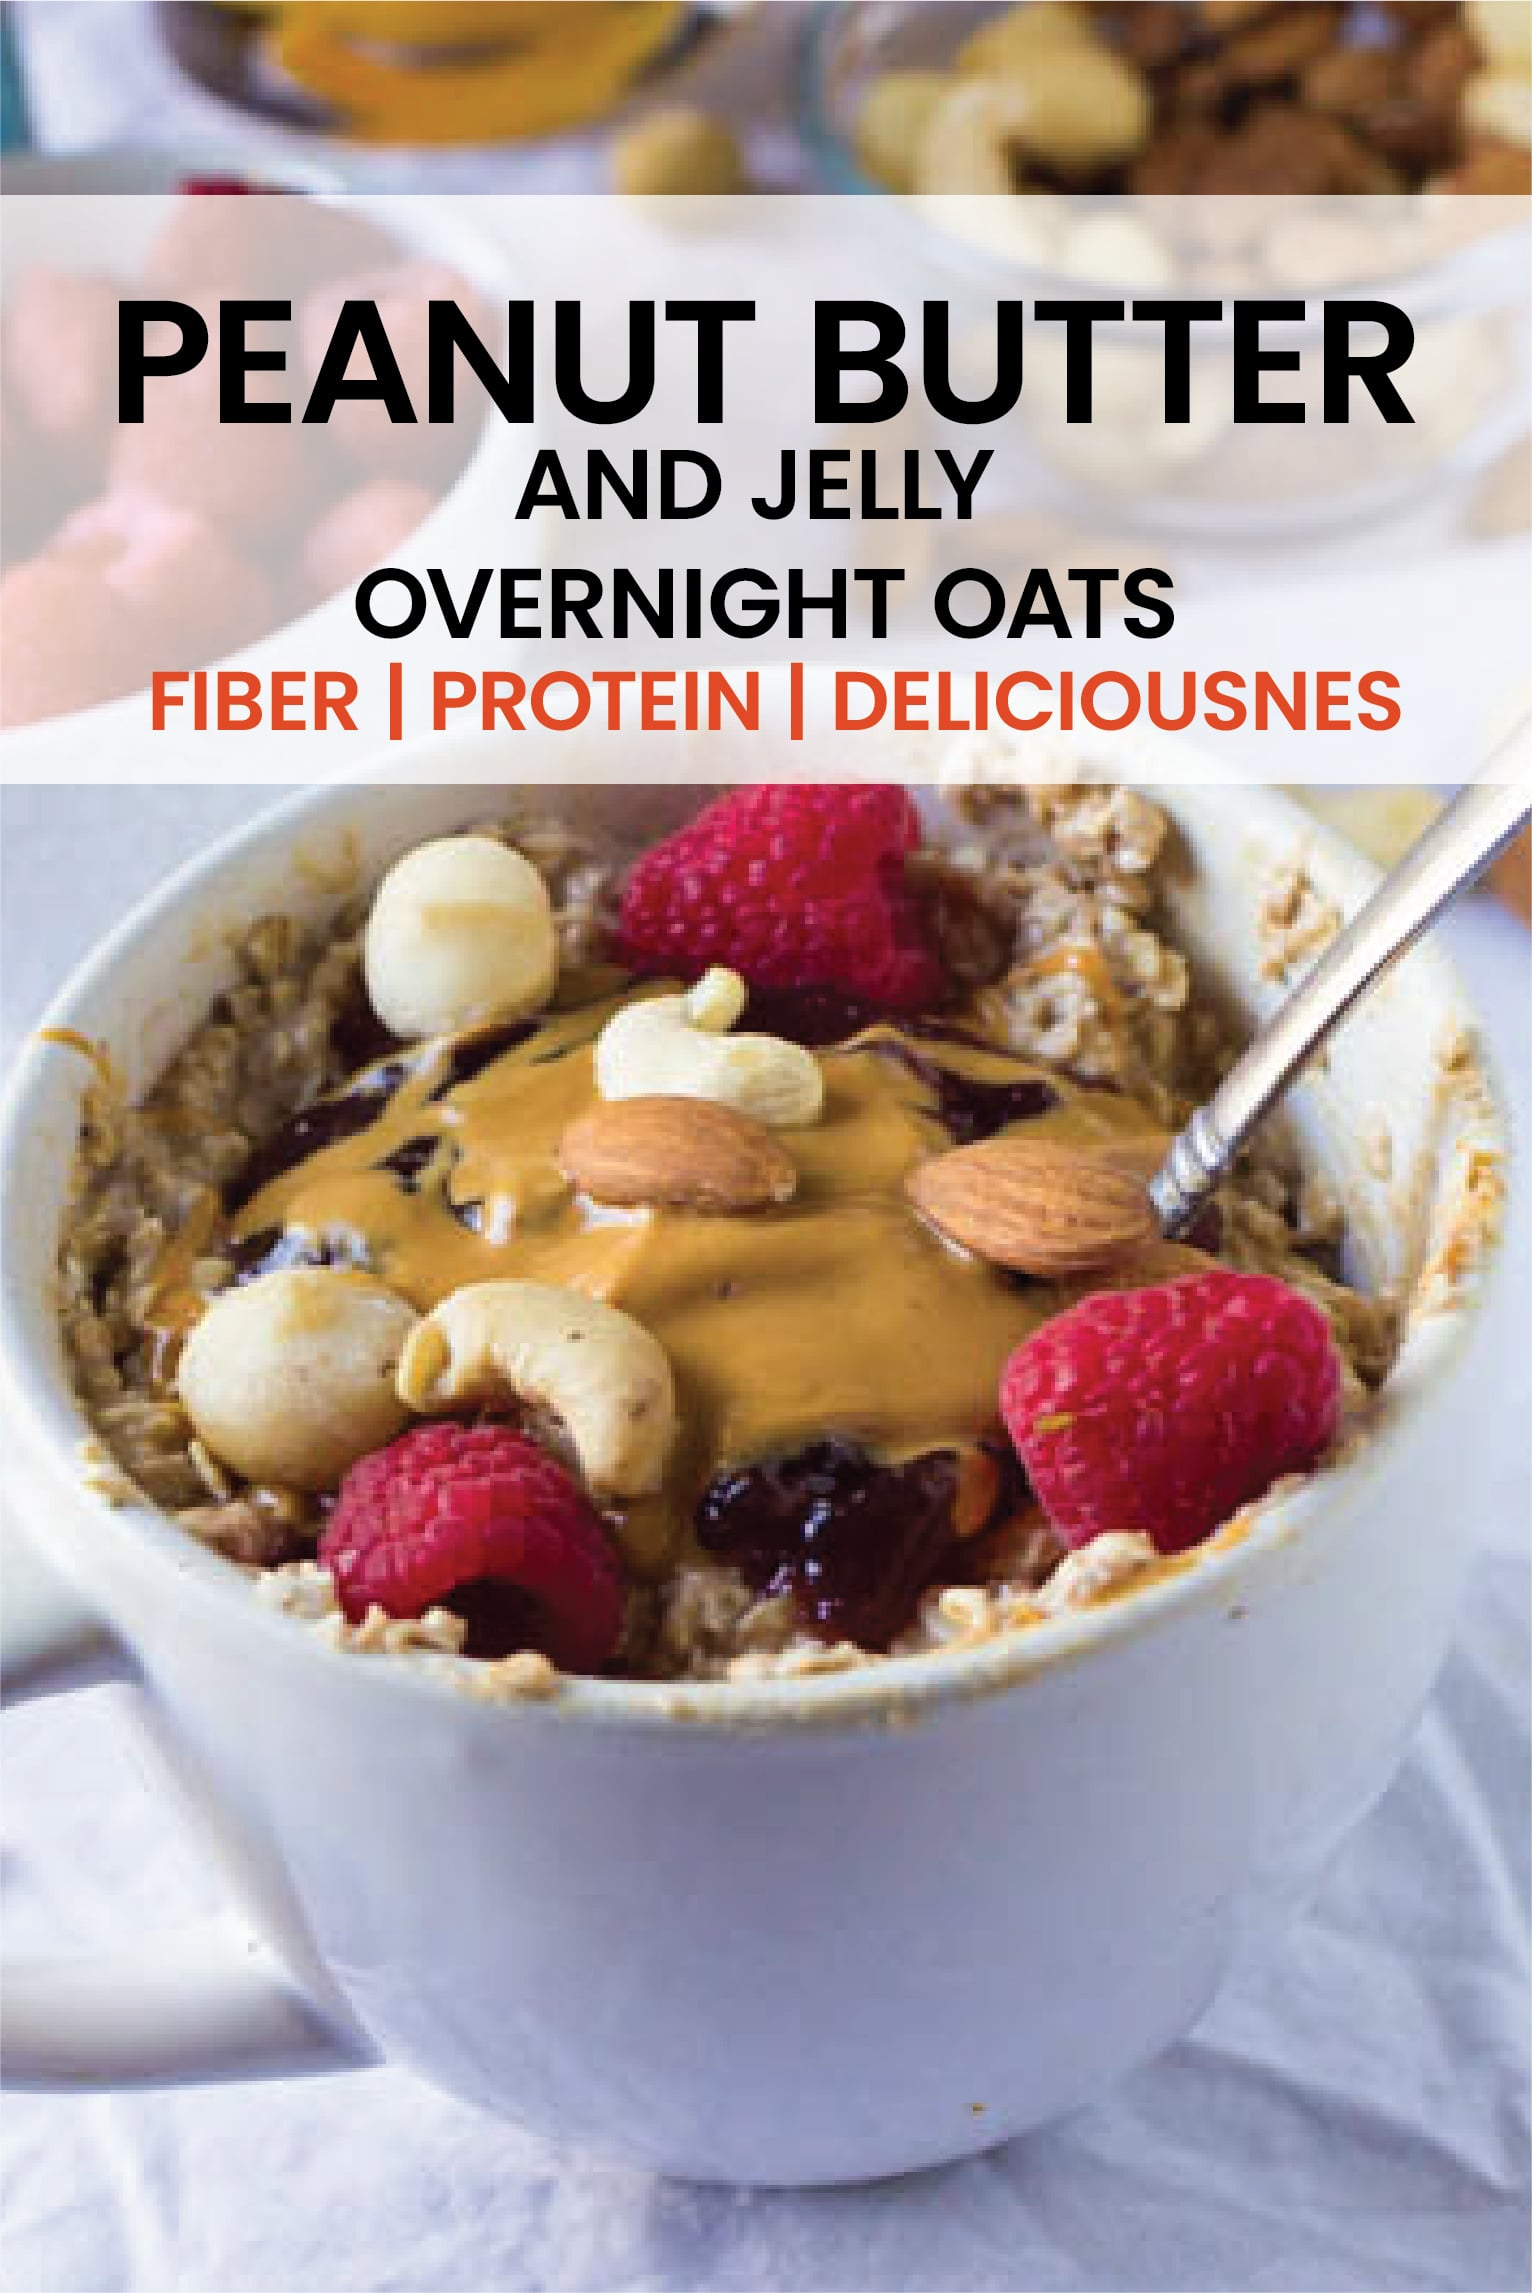 Breakfast will never be forgotten again with these Peanut Butter and Jelly overnight oats!  Full of fiber, protein and pure deliciousness, this is one breakfast that the whole family will enjoy.#overnightoats